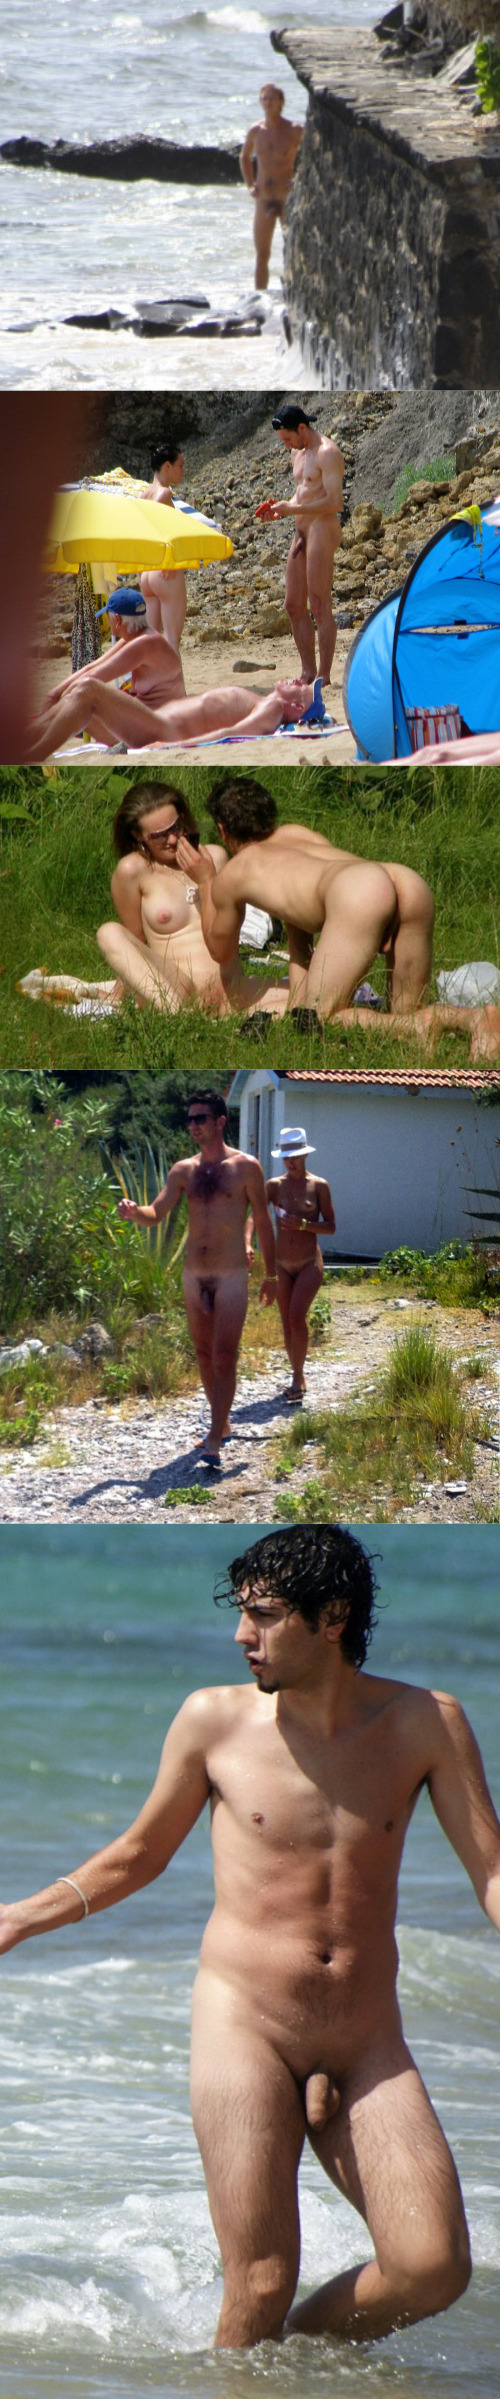 nudist beach guys caught by spy cams